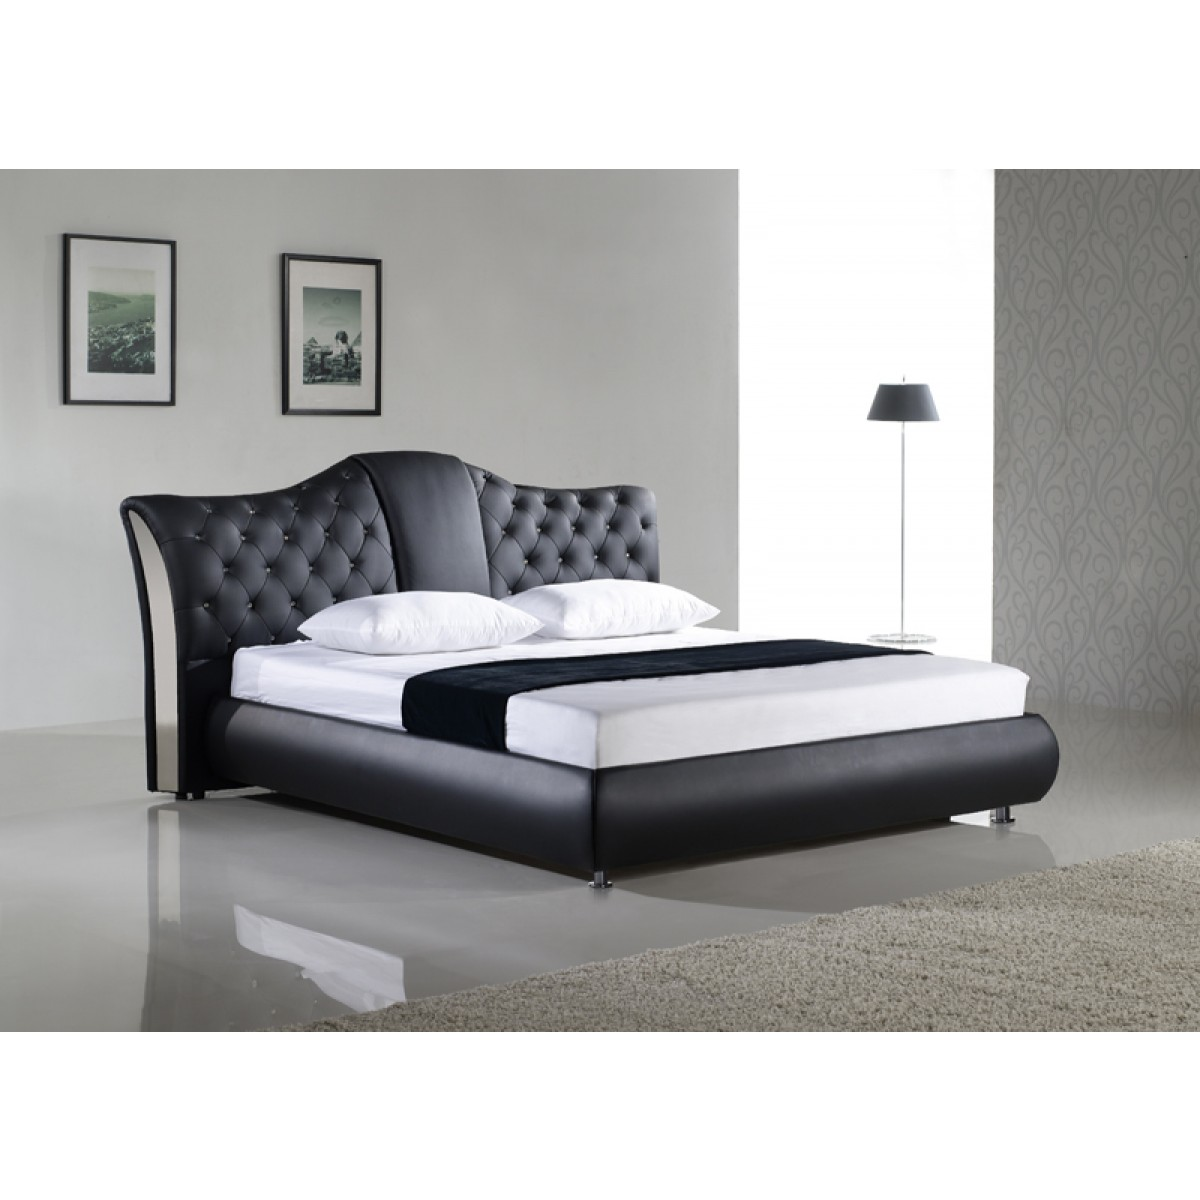 lit personnalisable royal 140 160 180 cuir ou simili sommier matela. Black Bedroom Furniture Sets. Home Design Ideas